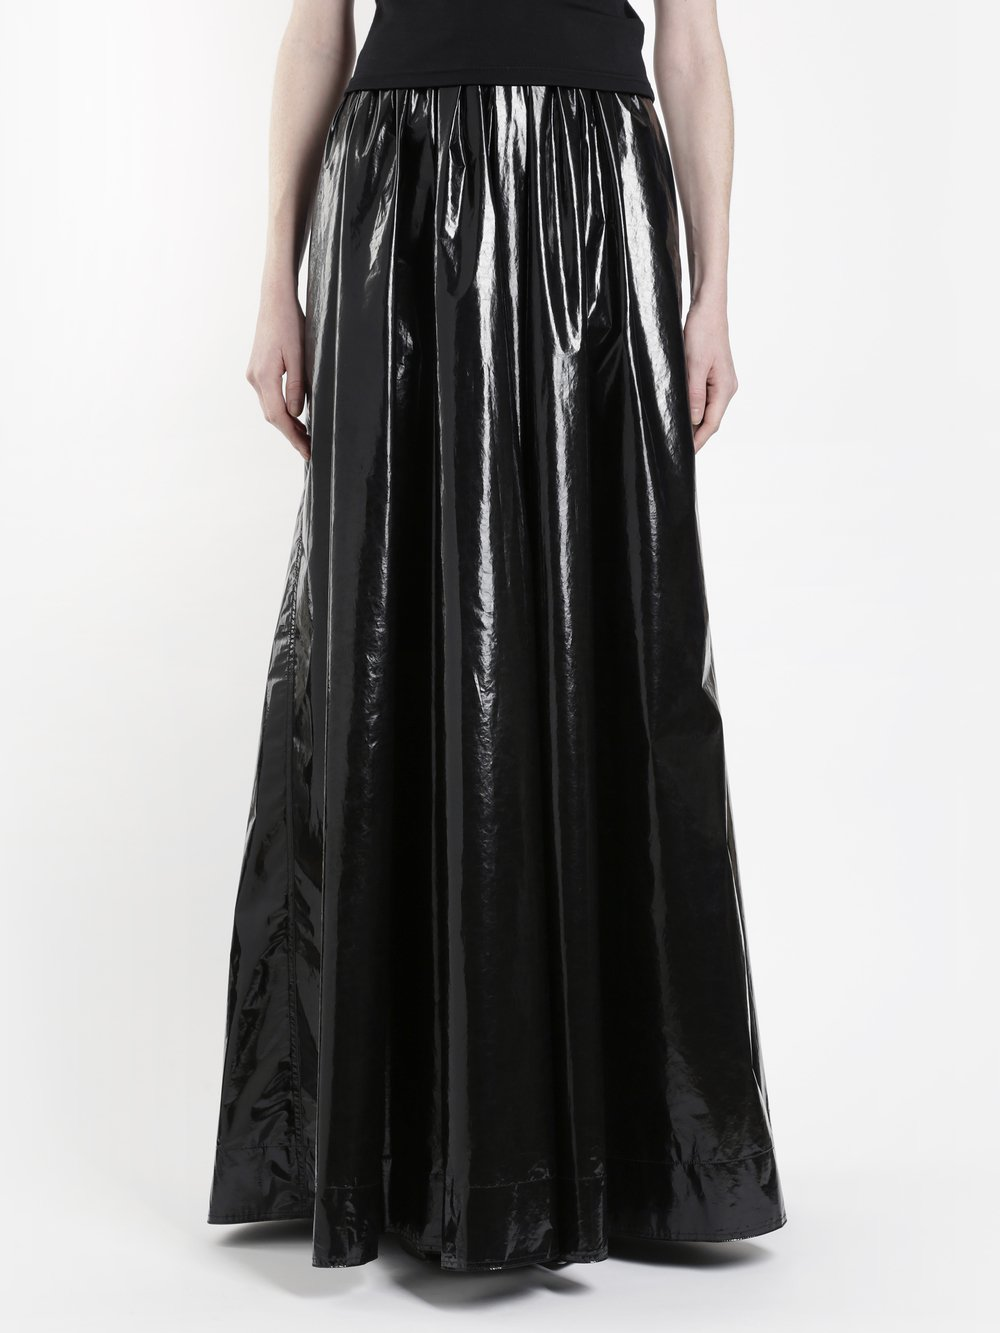 KWAIDAN EDITIONS WOMEN'S BLACK SHINY RUBBISH SKIRT